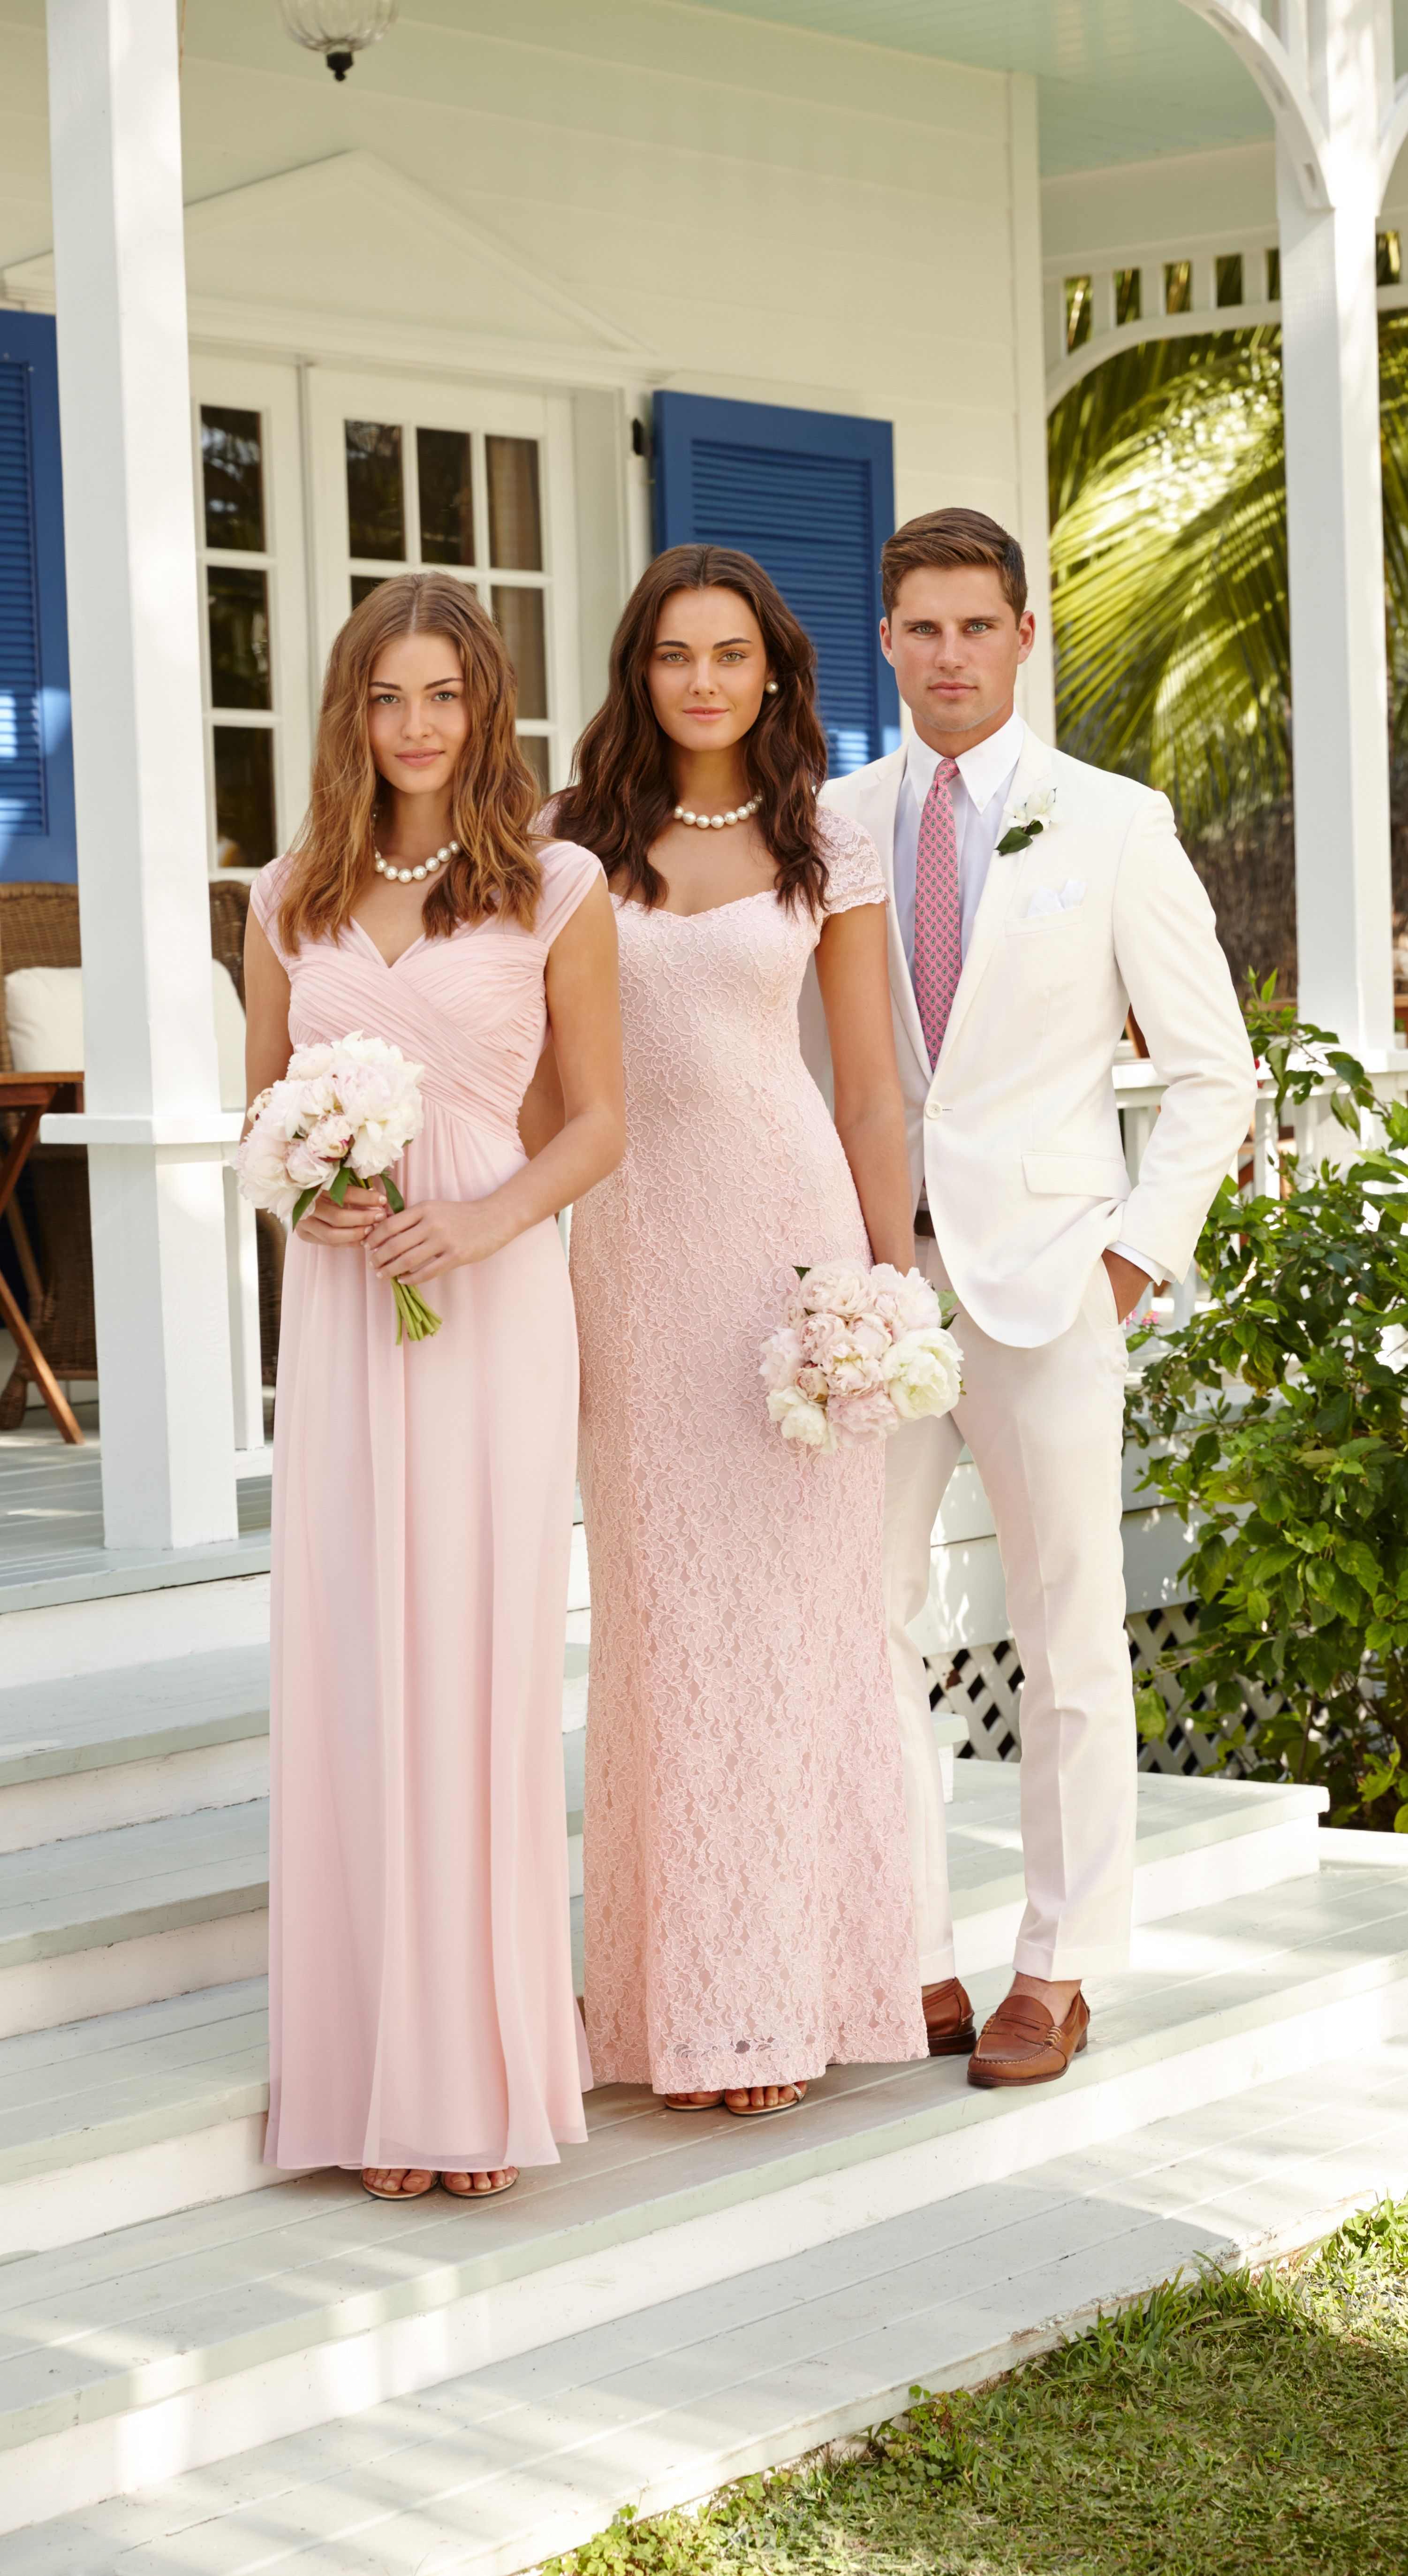 Lauren Ralph Wedding Soft Pink Bridesmaid Dresses And Sharp White Suits Look Elegant Timeless At A Spring